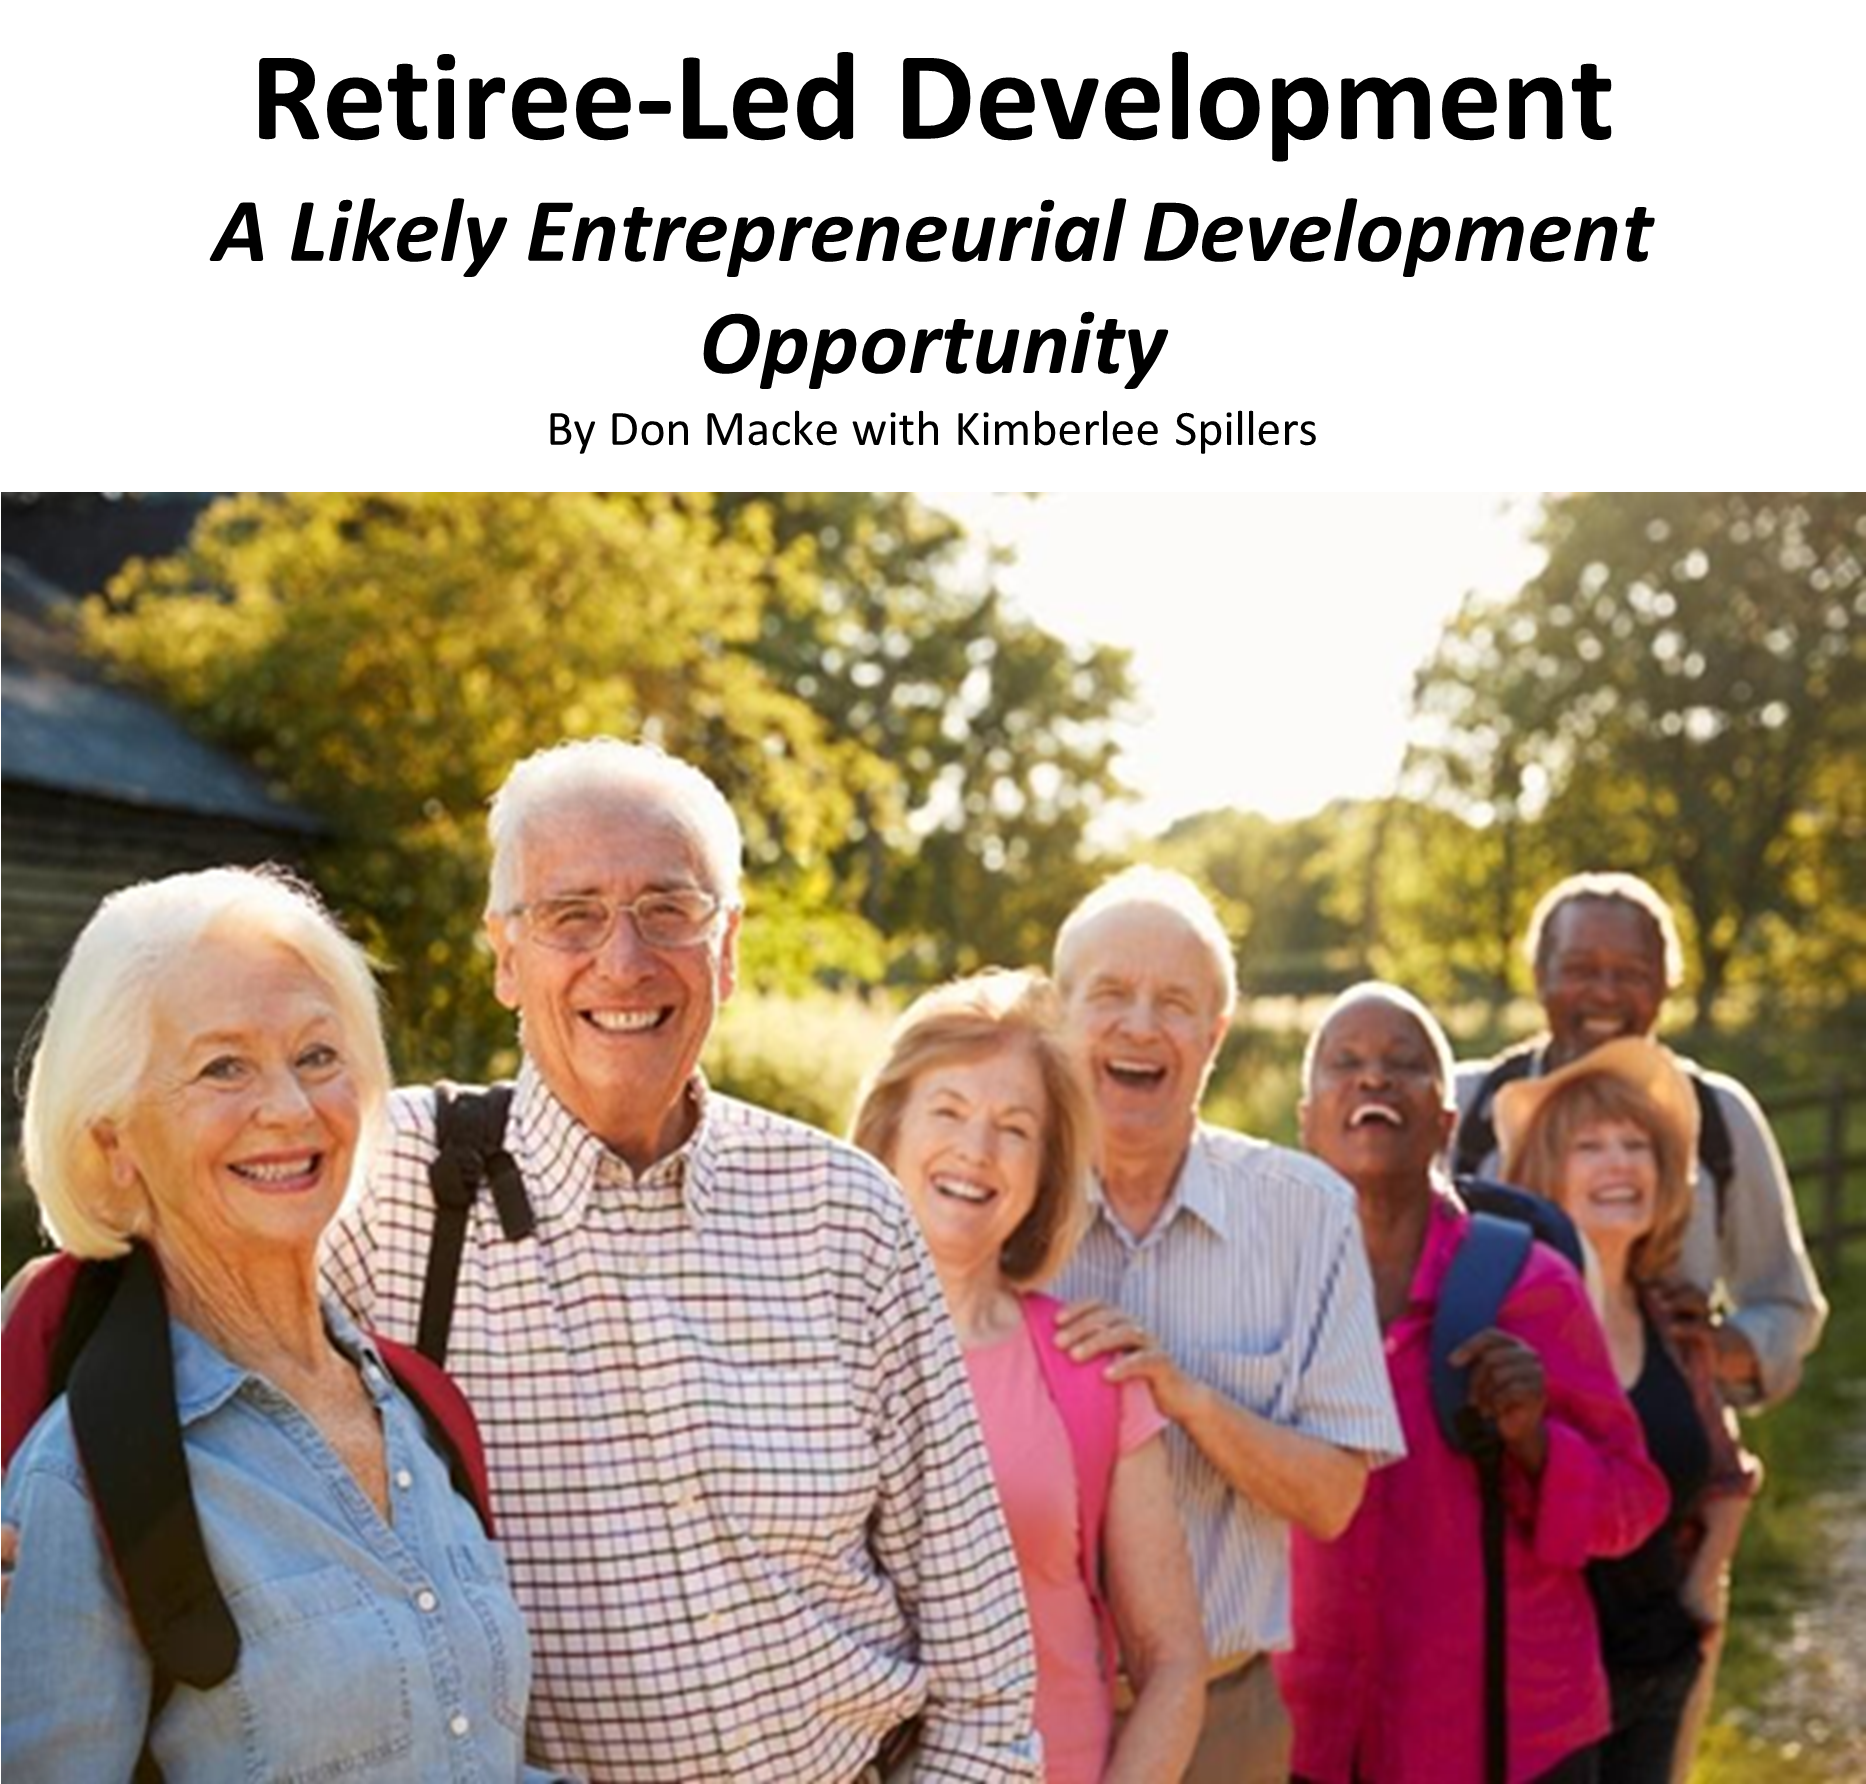 Retiree-Led Development Thought Paper